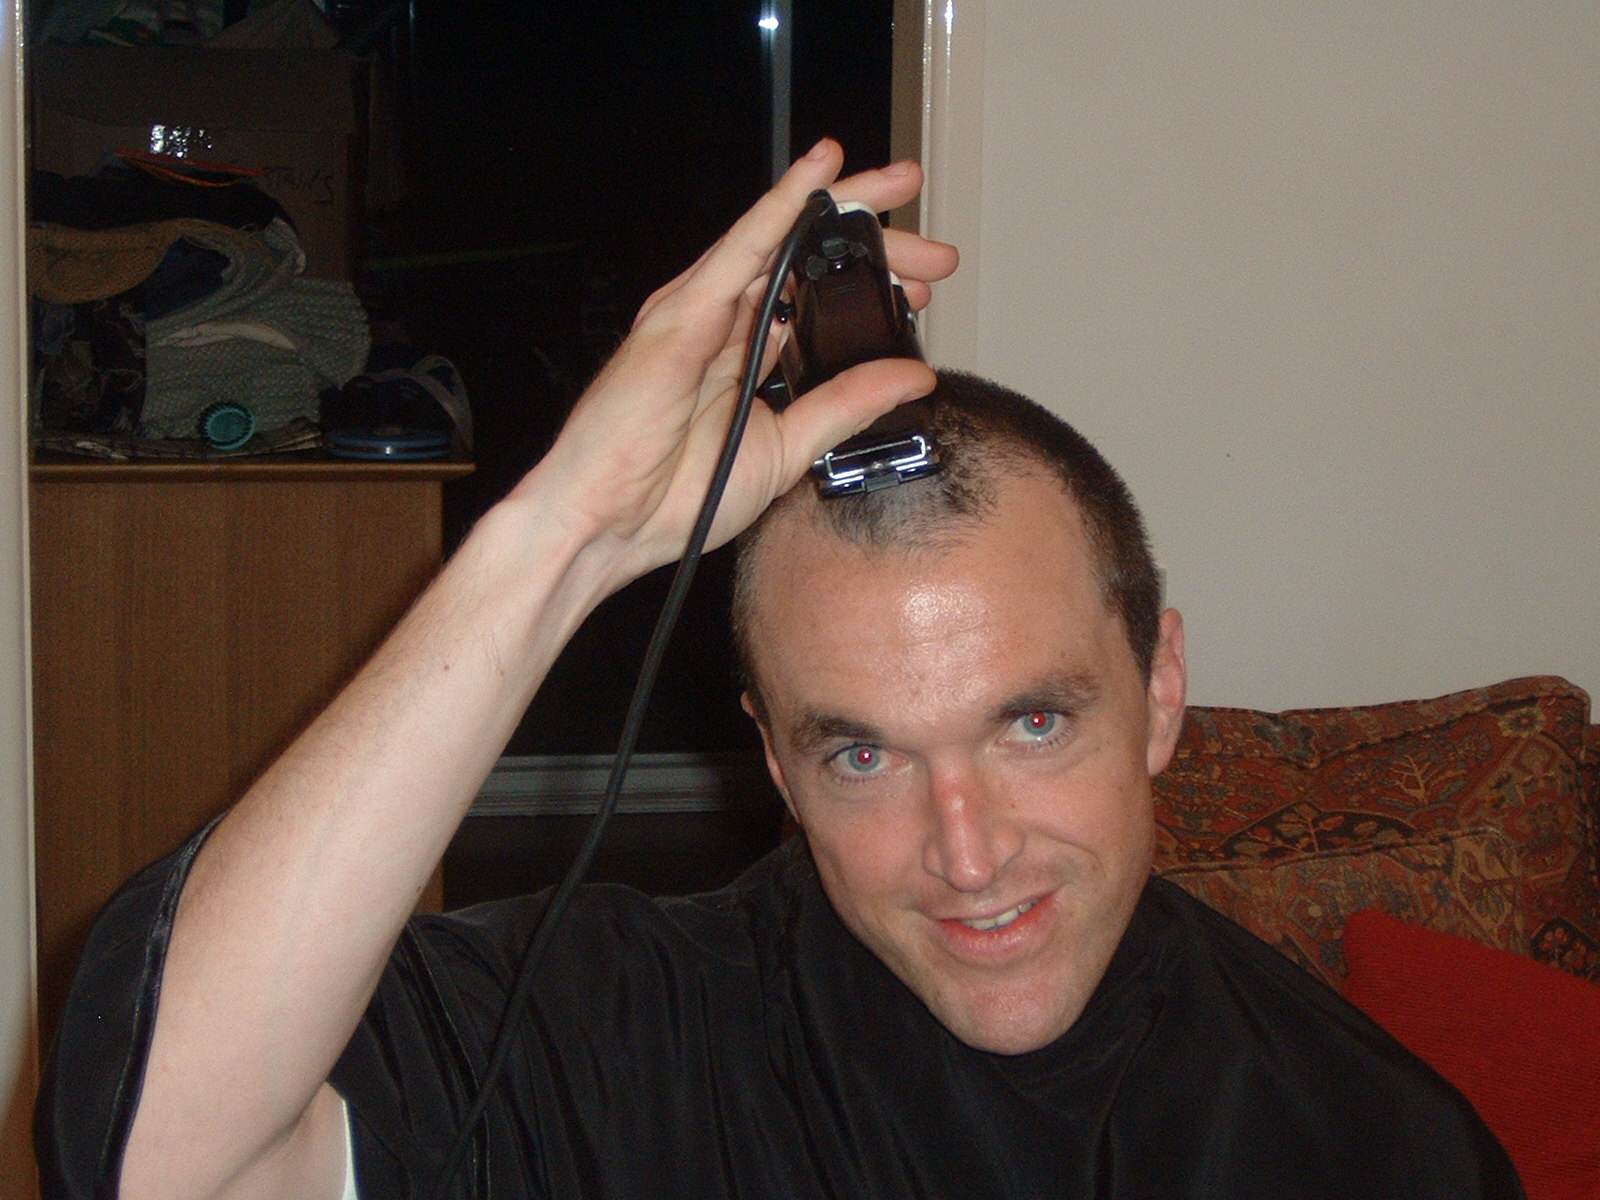 Mike_ShavingBefore1stCourseOfChemo_May2004.jpg